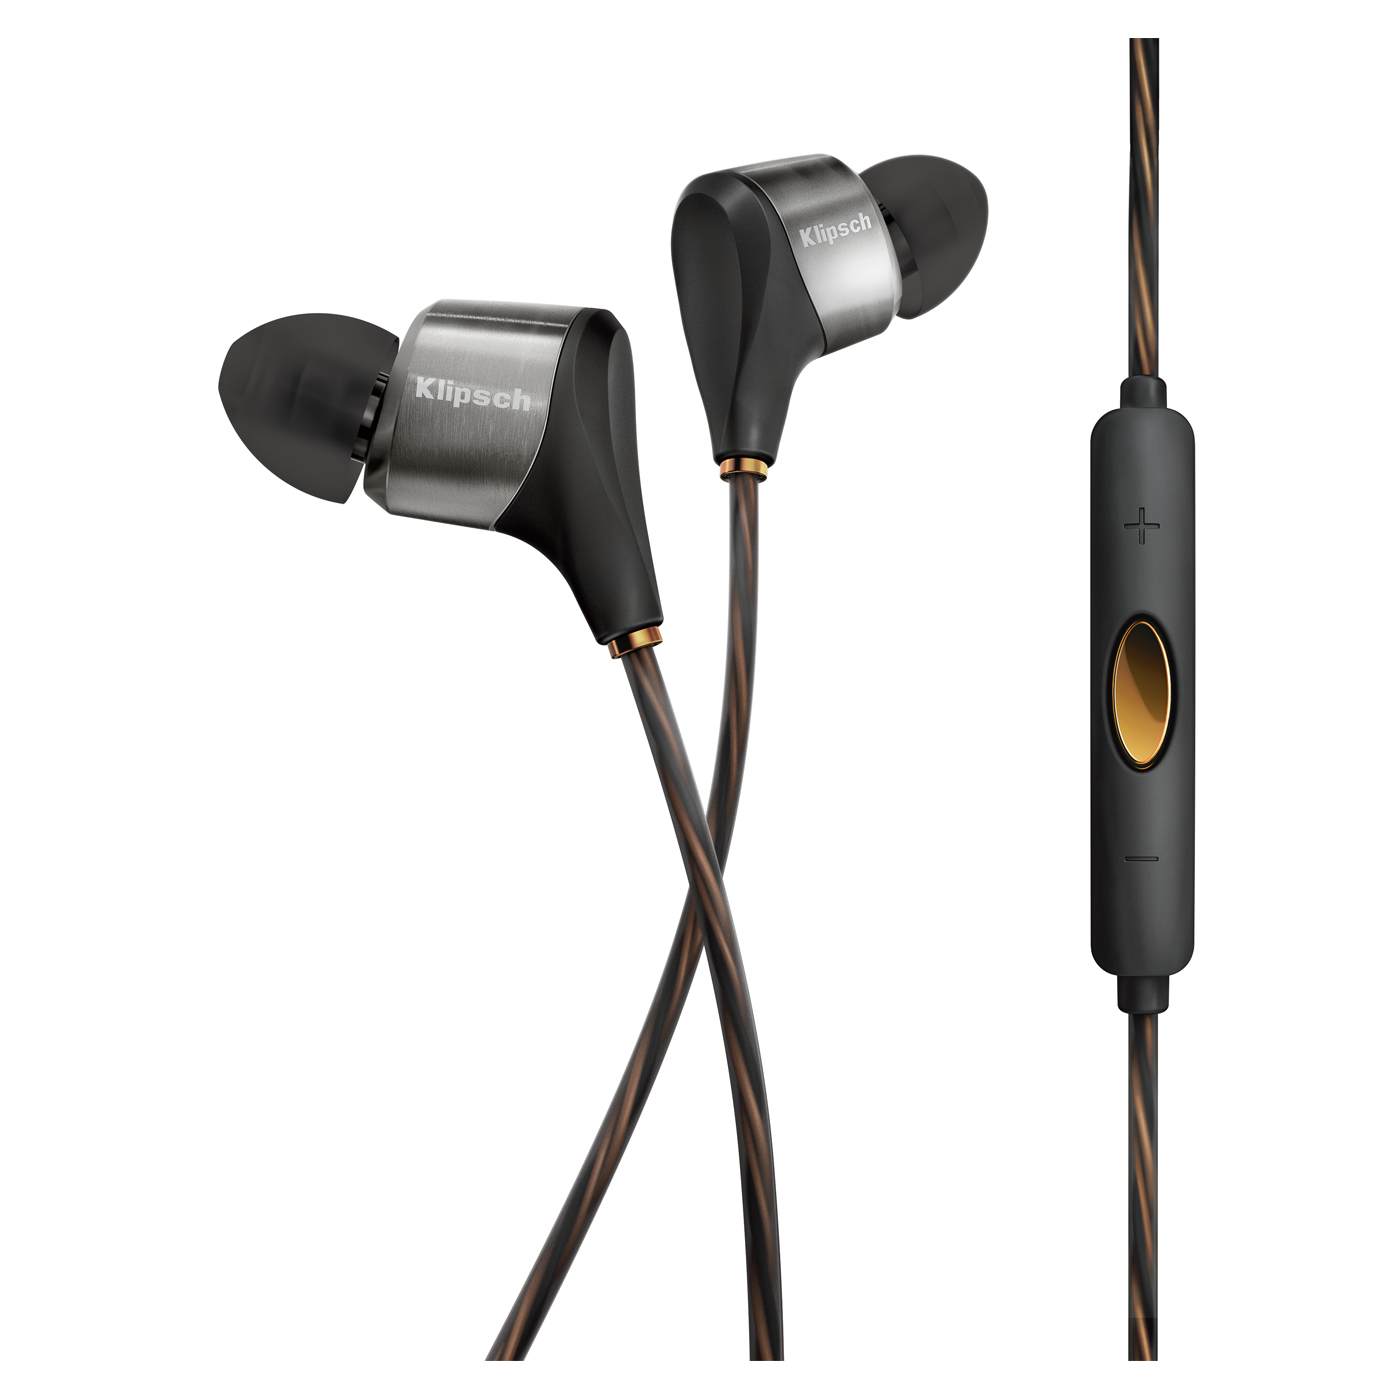 Klipsch XR8i Reference Hybrid In-Ear Headphones by Klipsch